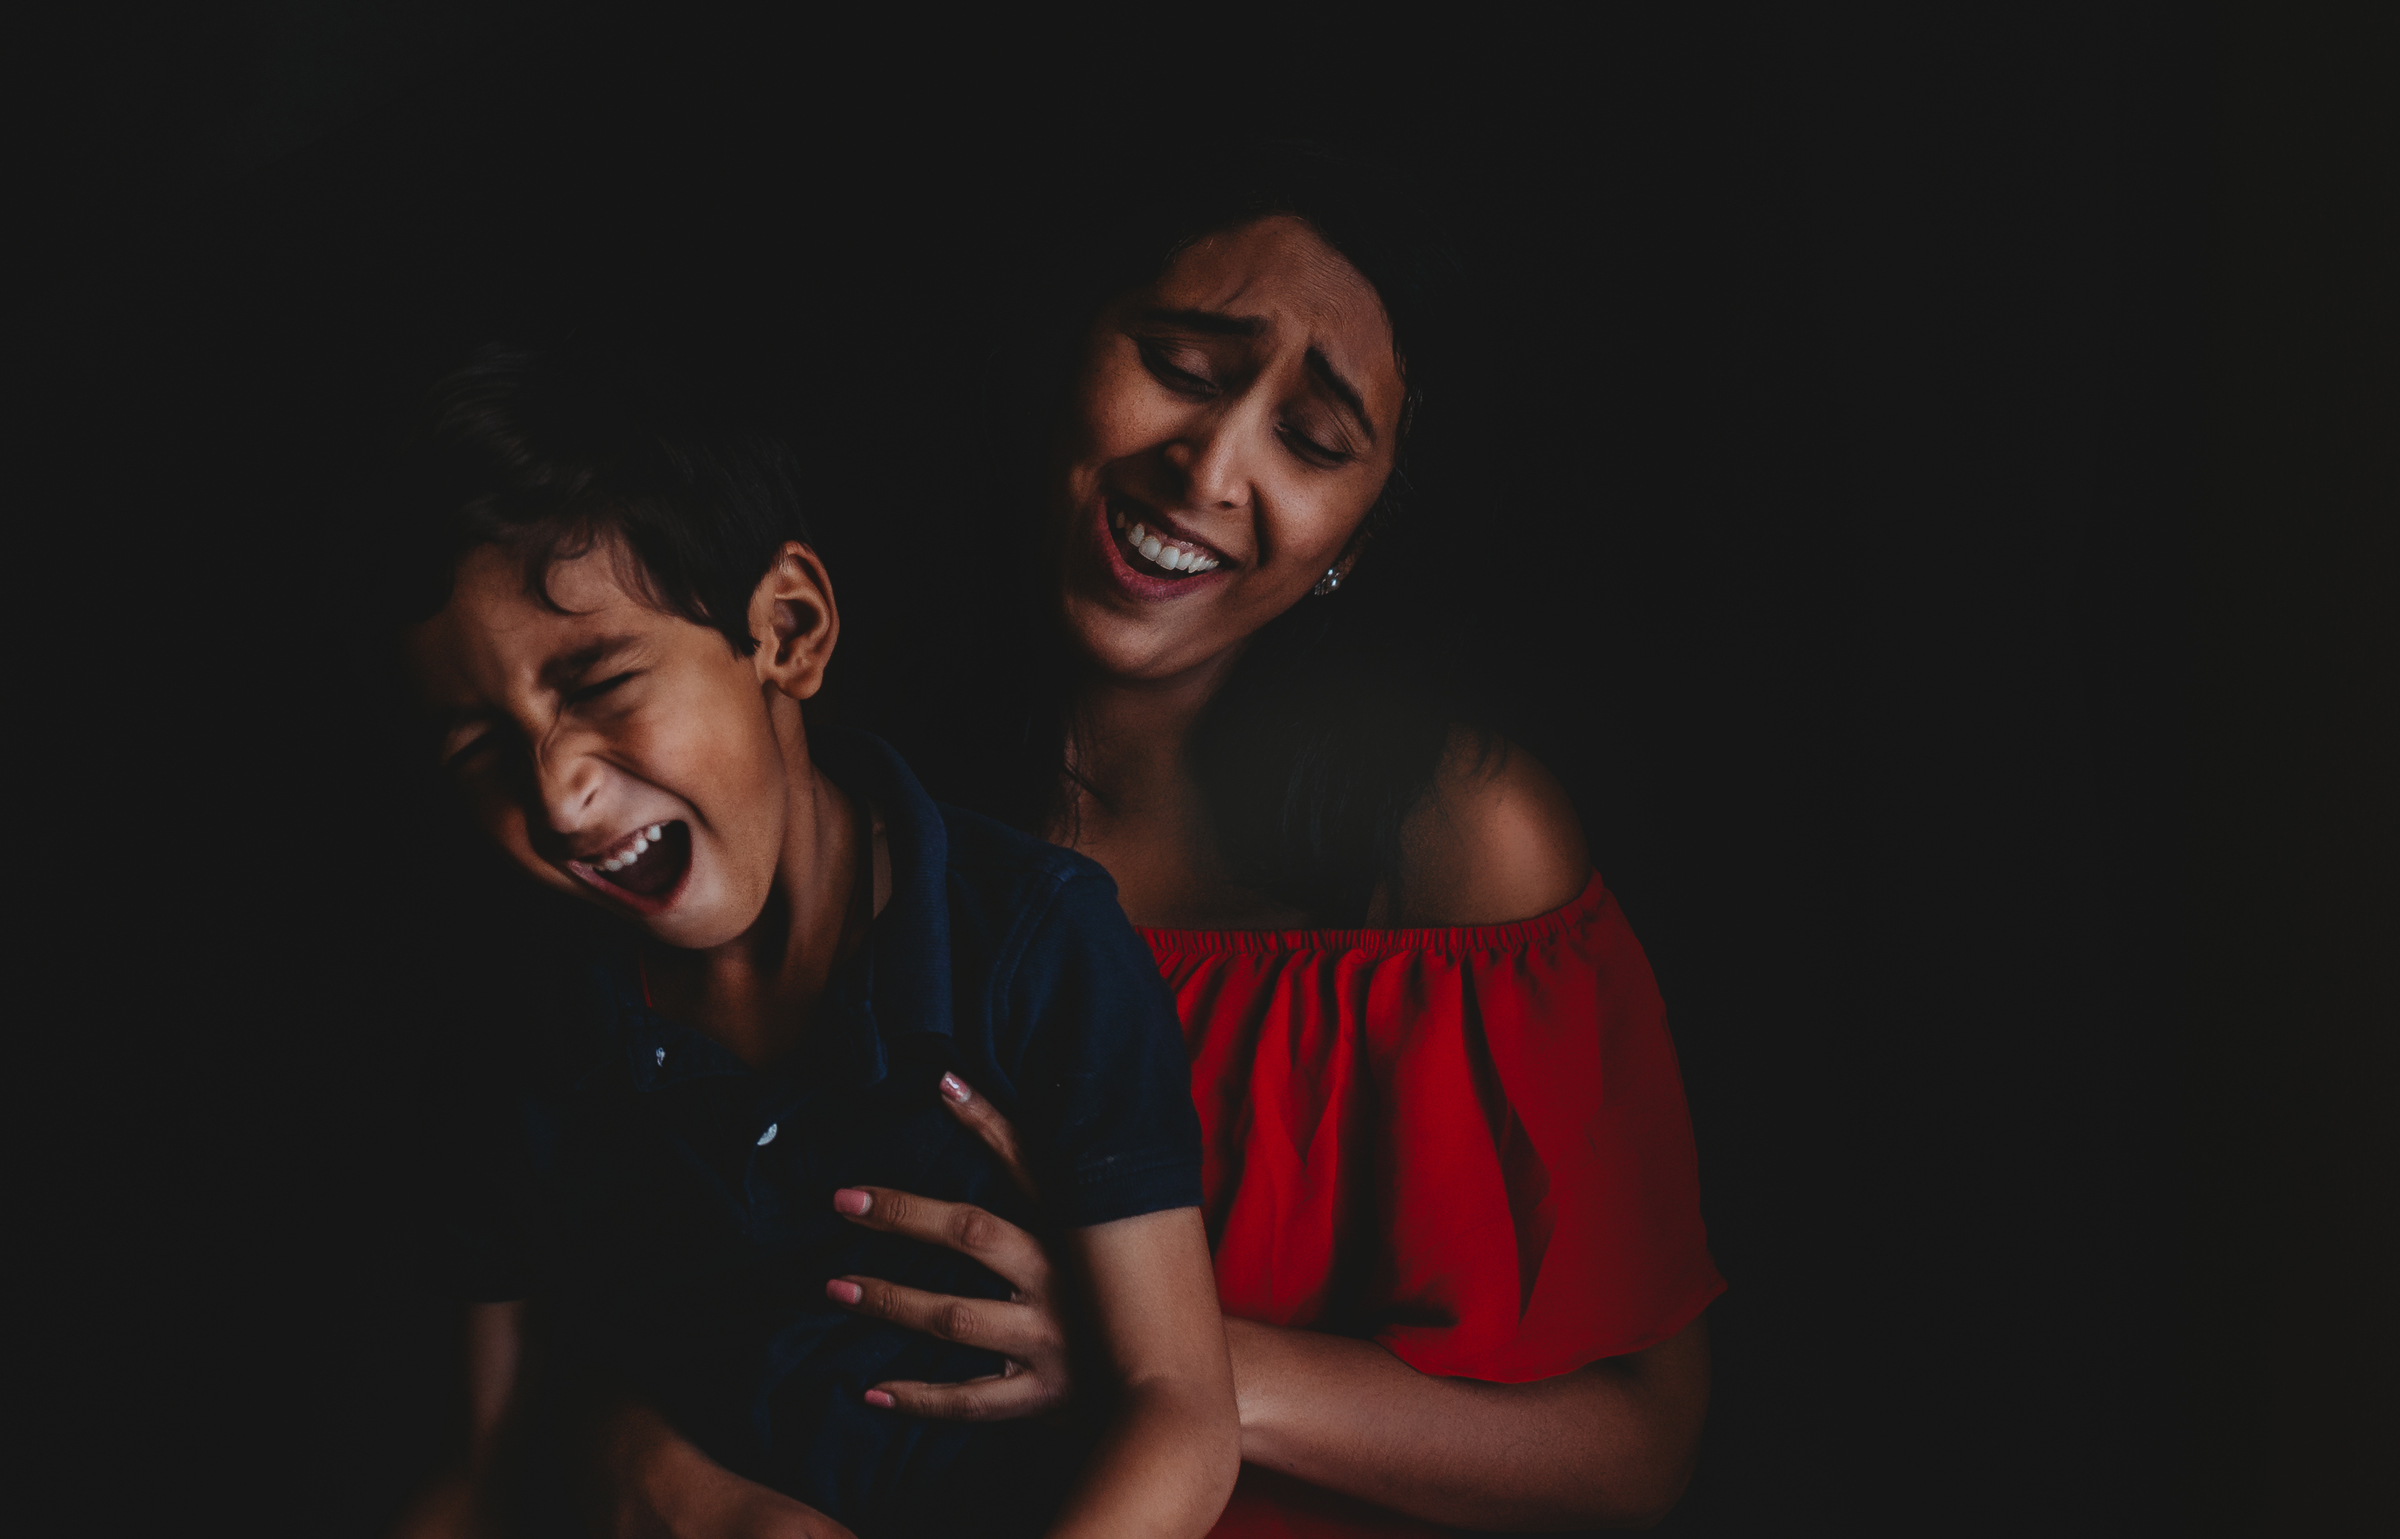 mother and young son laughing together self portrait jyo bhamidipati